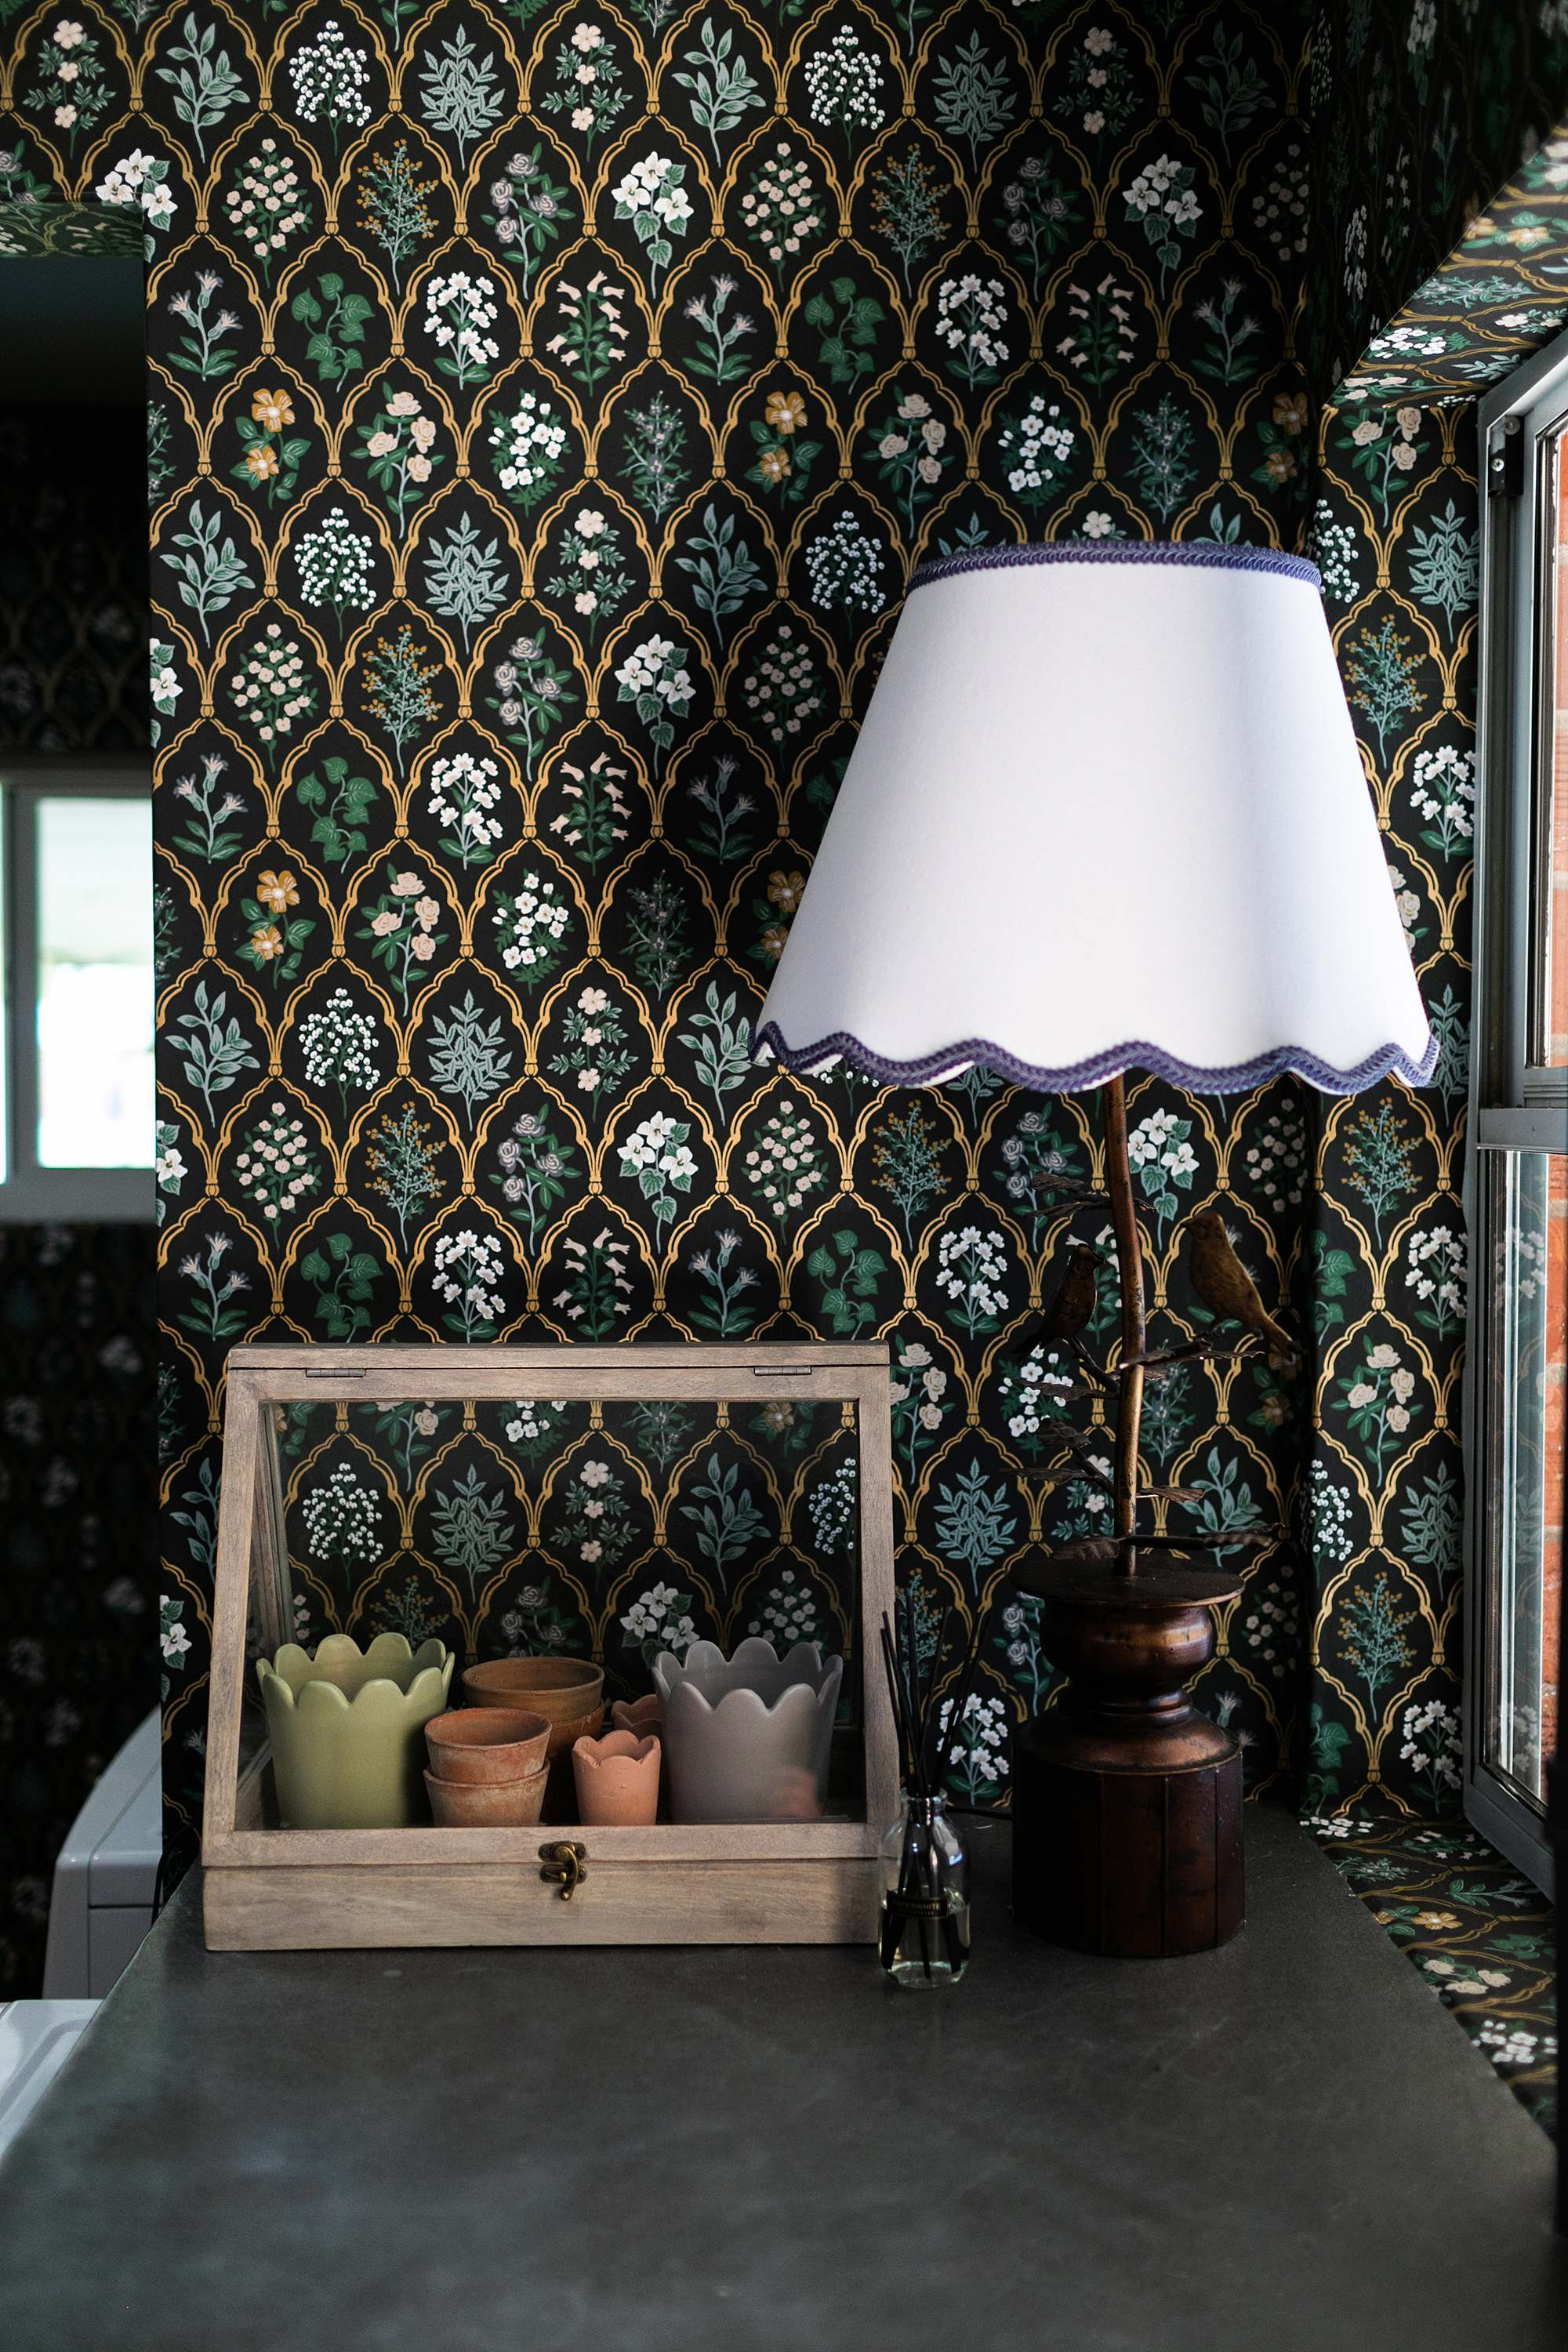 small A frame greenhouse scalloped garden pots scalloped lamp shade on bird lamp / scalloped jute rug rifle paper co. Hawthorne wallpaper black linen floral wallpaper in mudroom laundry room English cottage vibes grandmillennial style - dianaelizabethblog.com